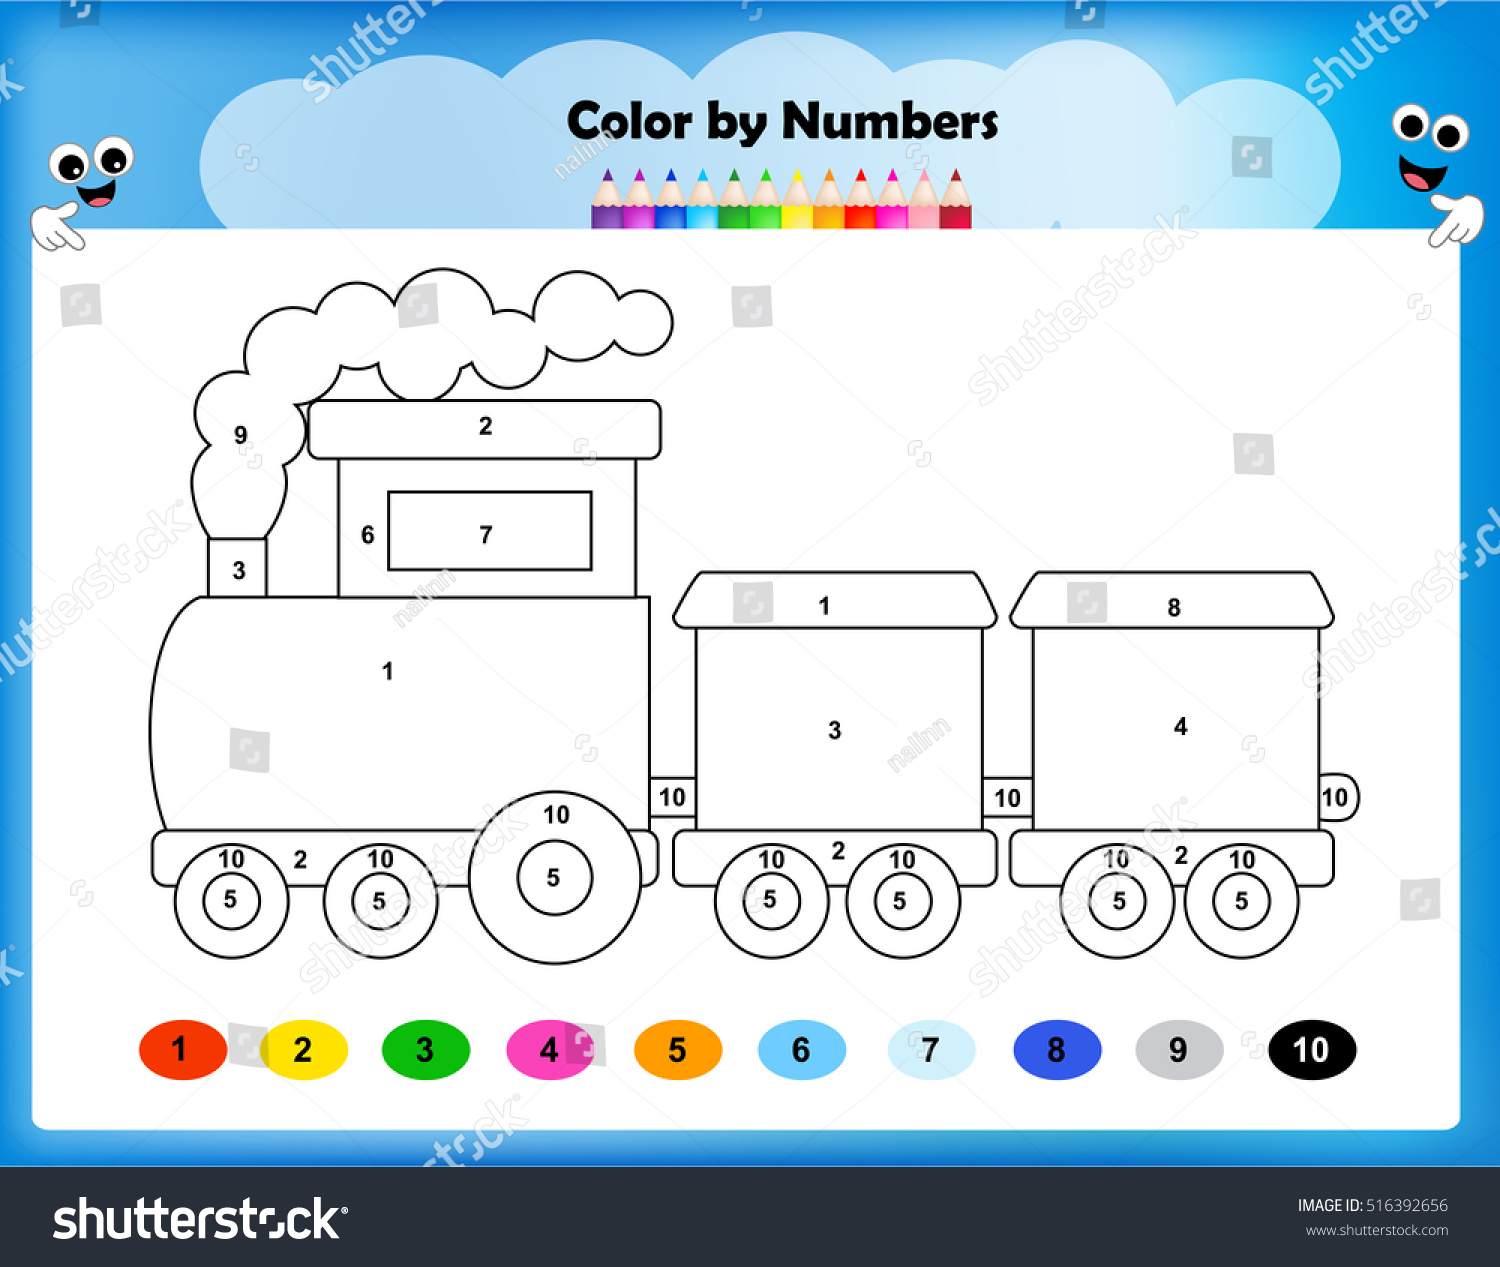 Worksheet Color By Numbers Train Worksheet Stock Vector 516392656 ...